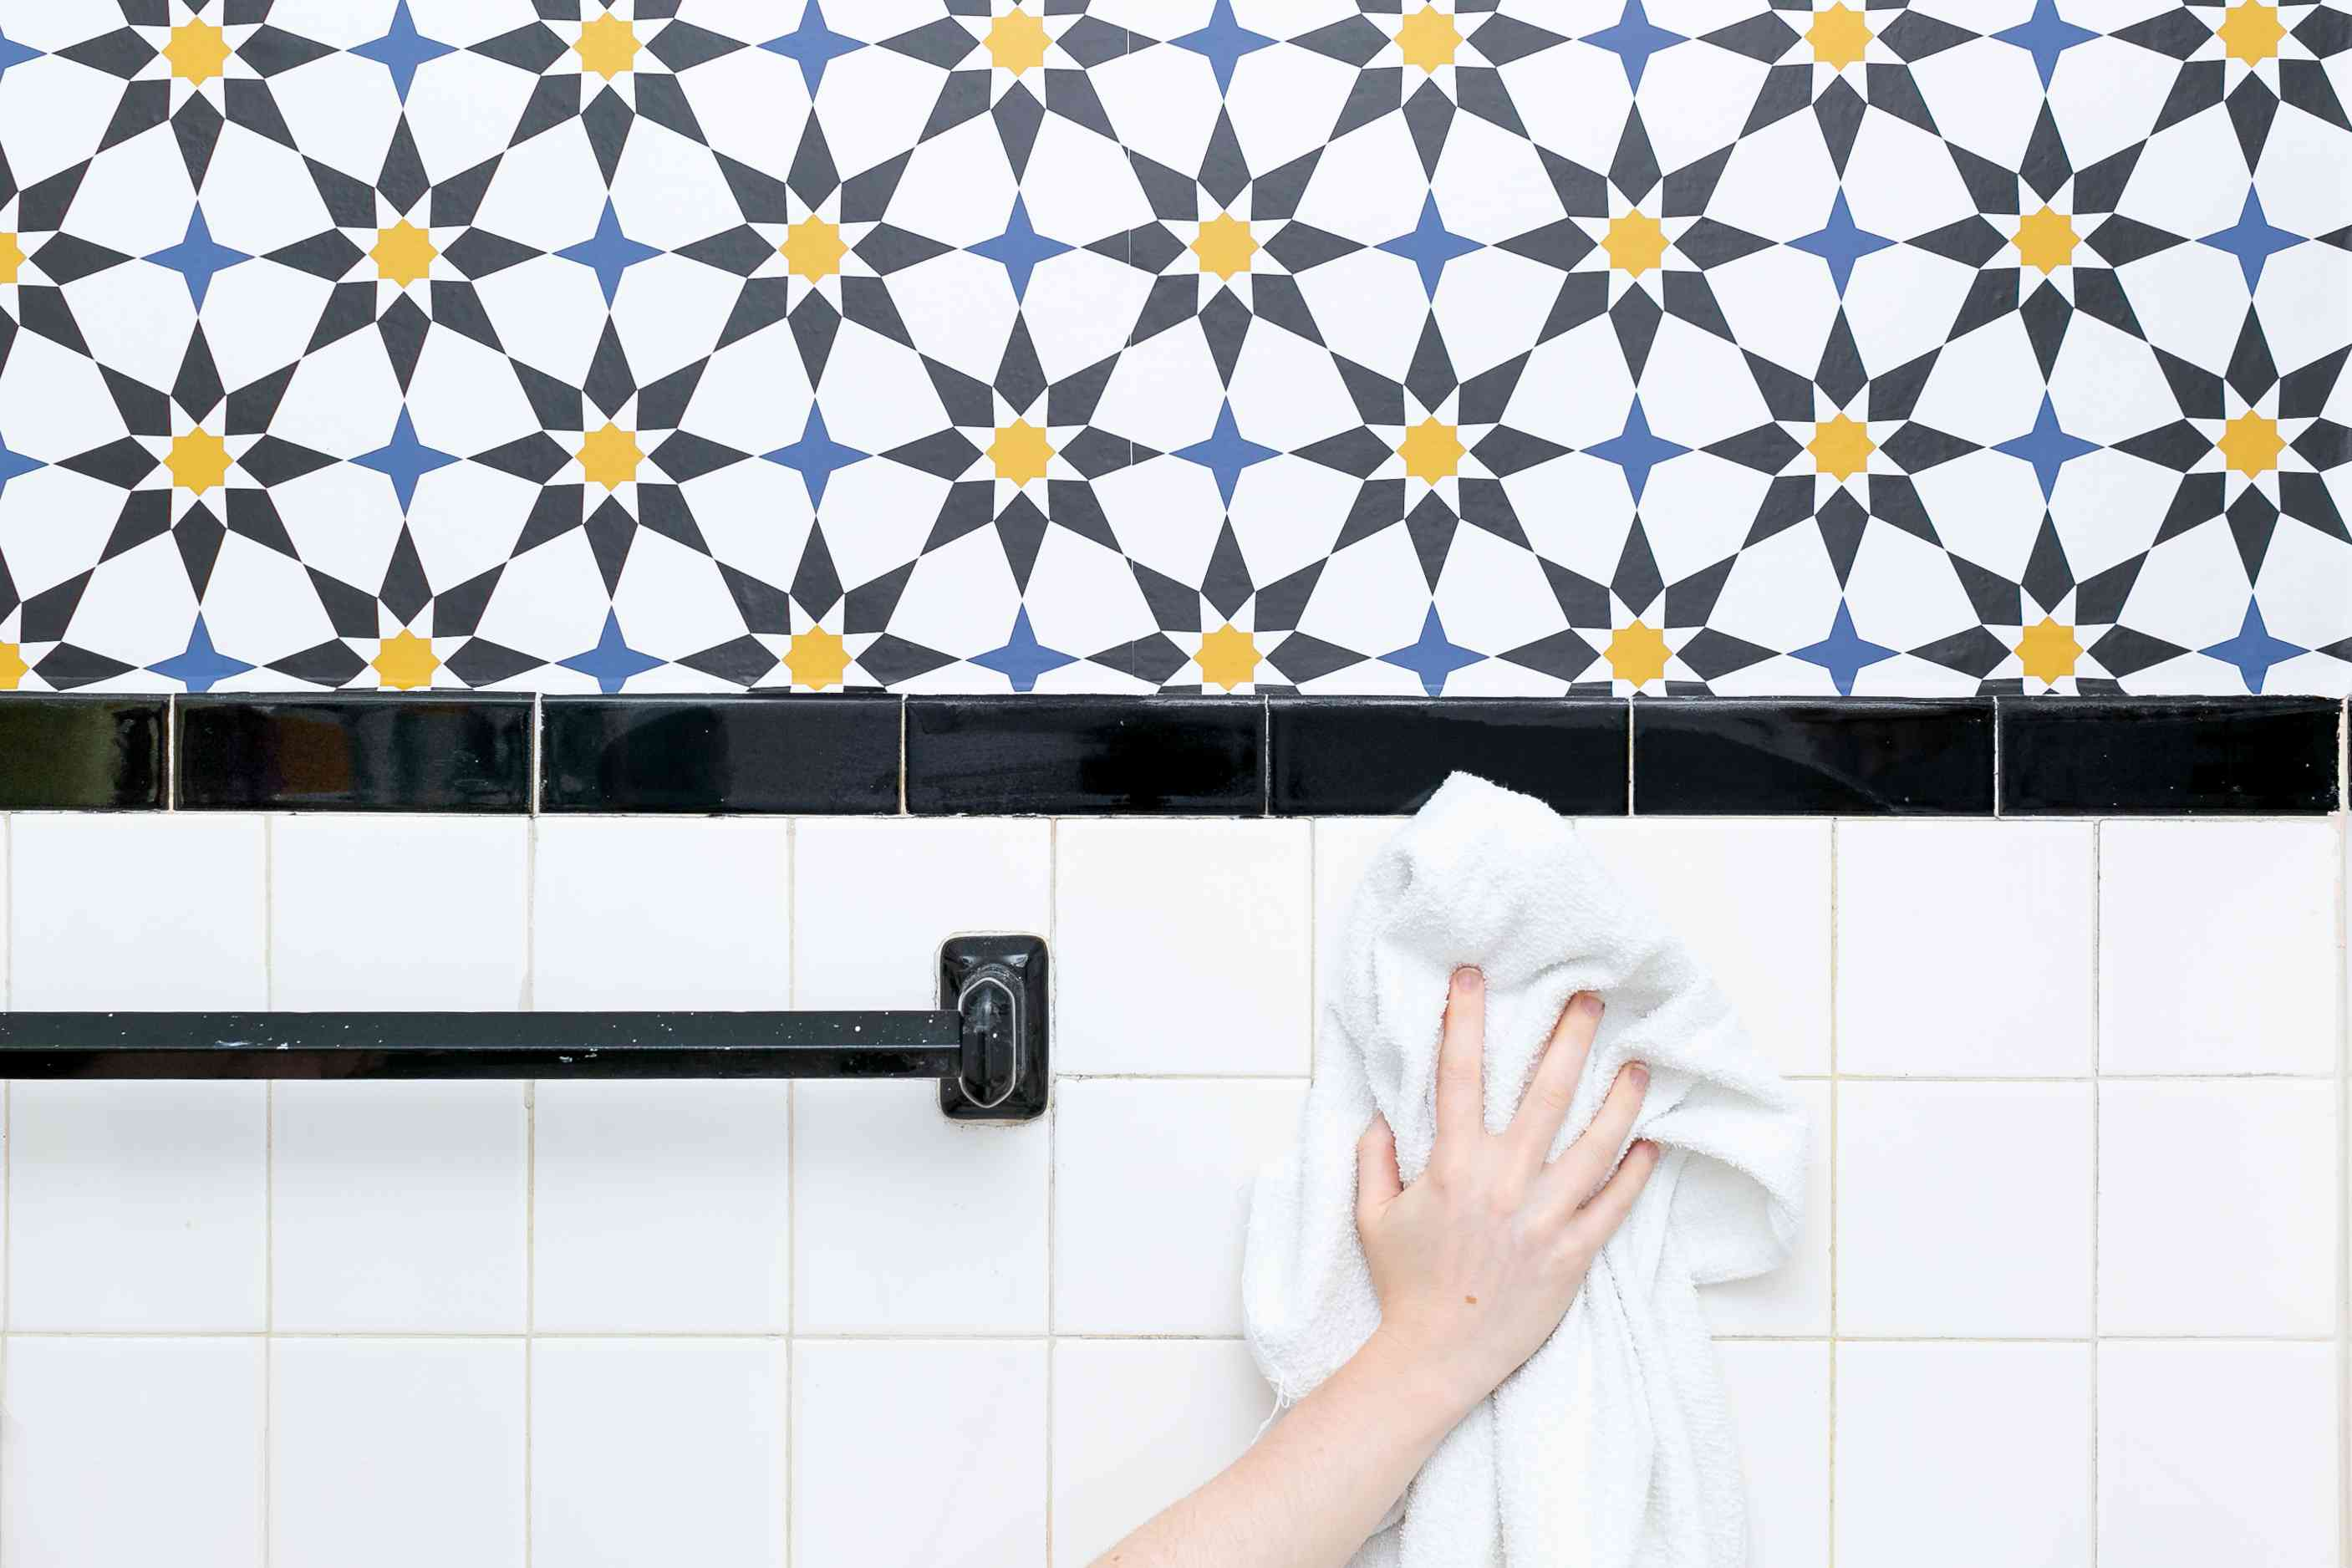 using a towel to dry the tiles